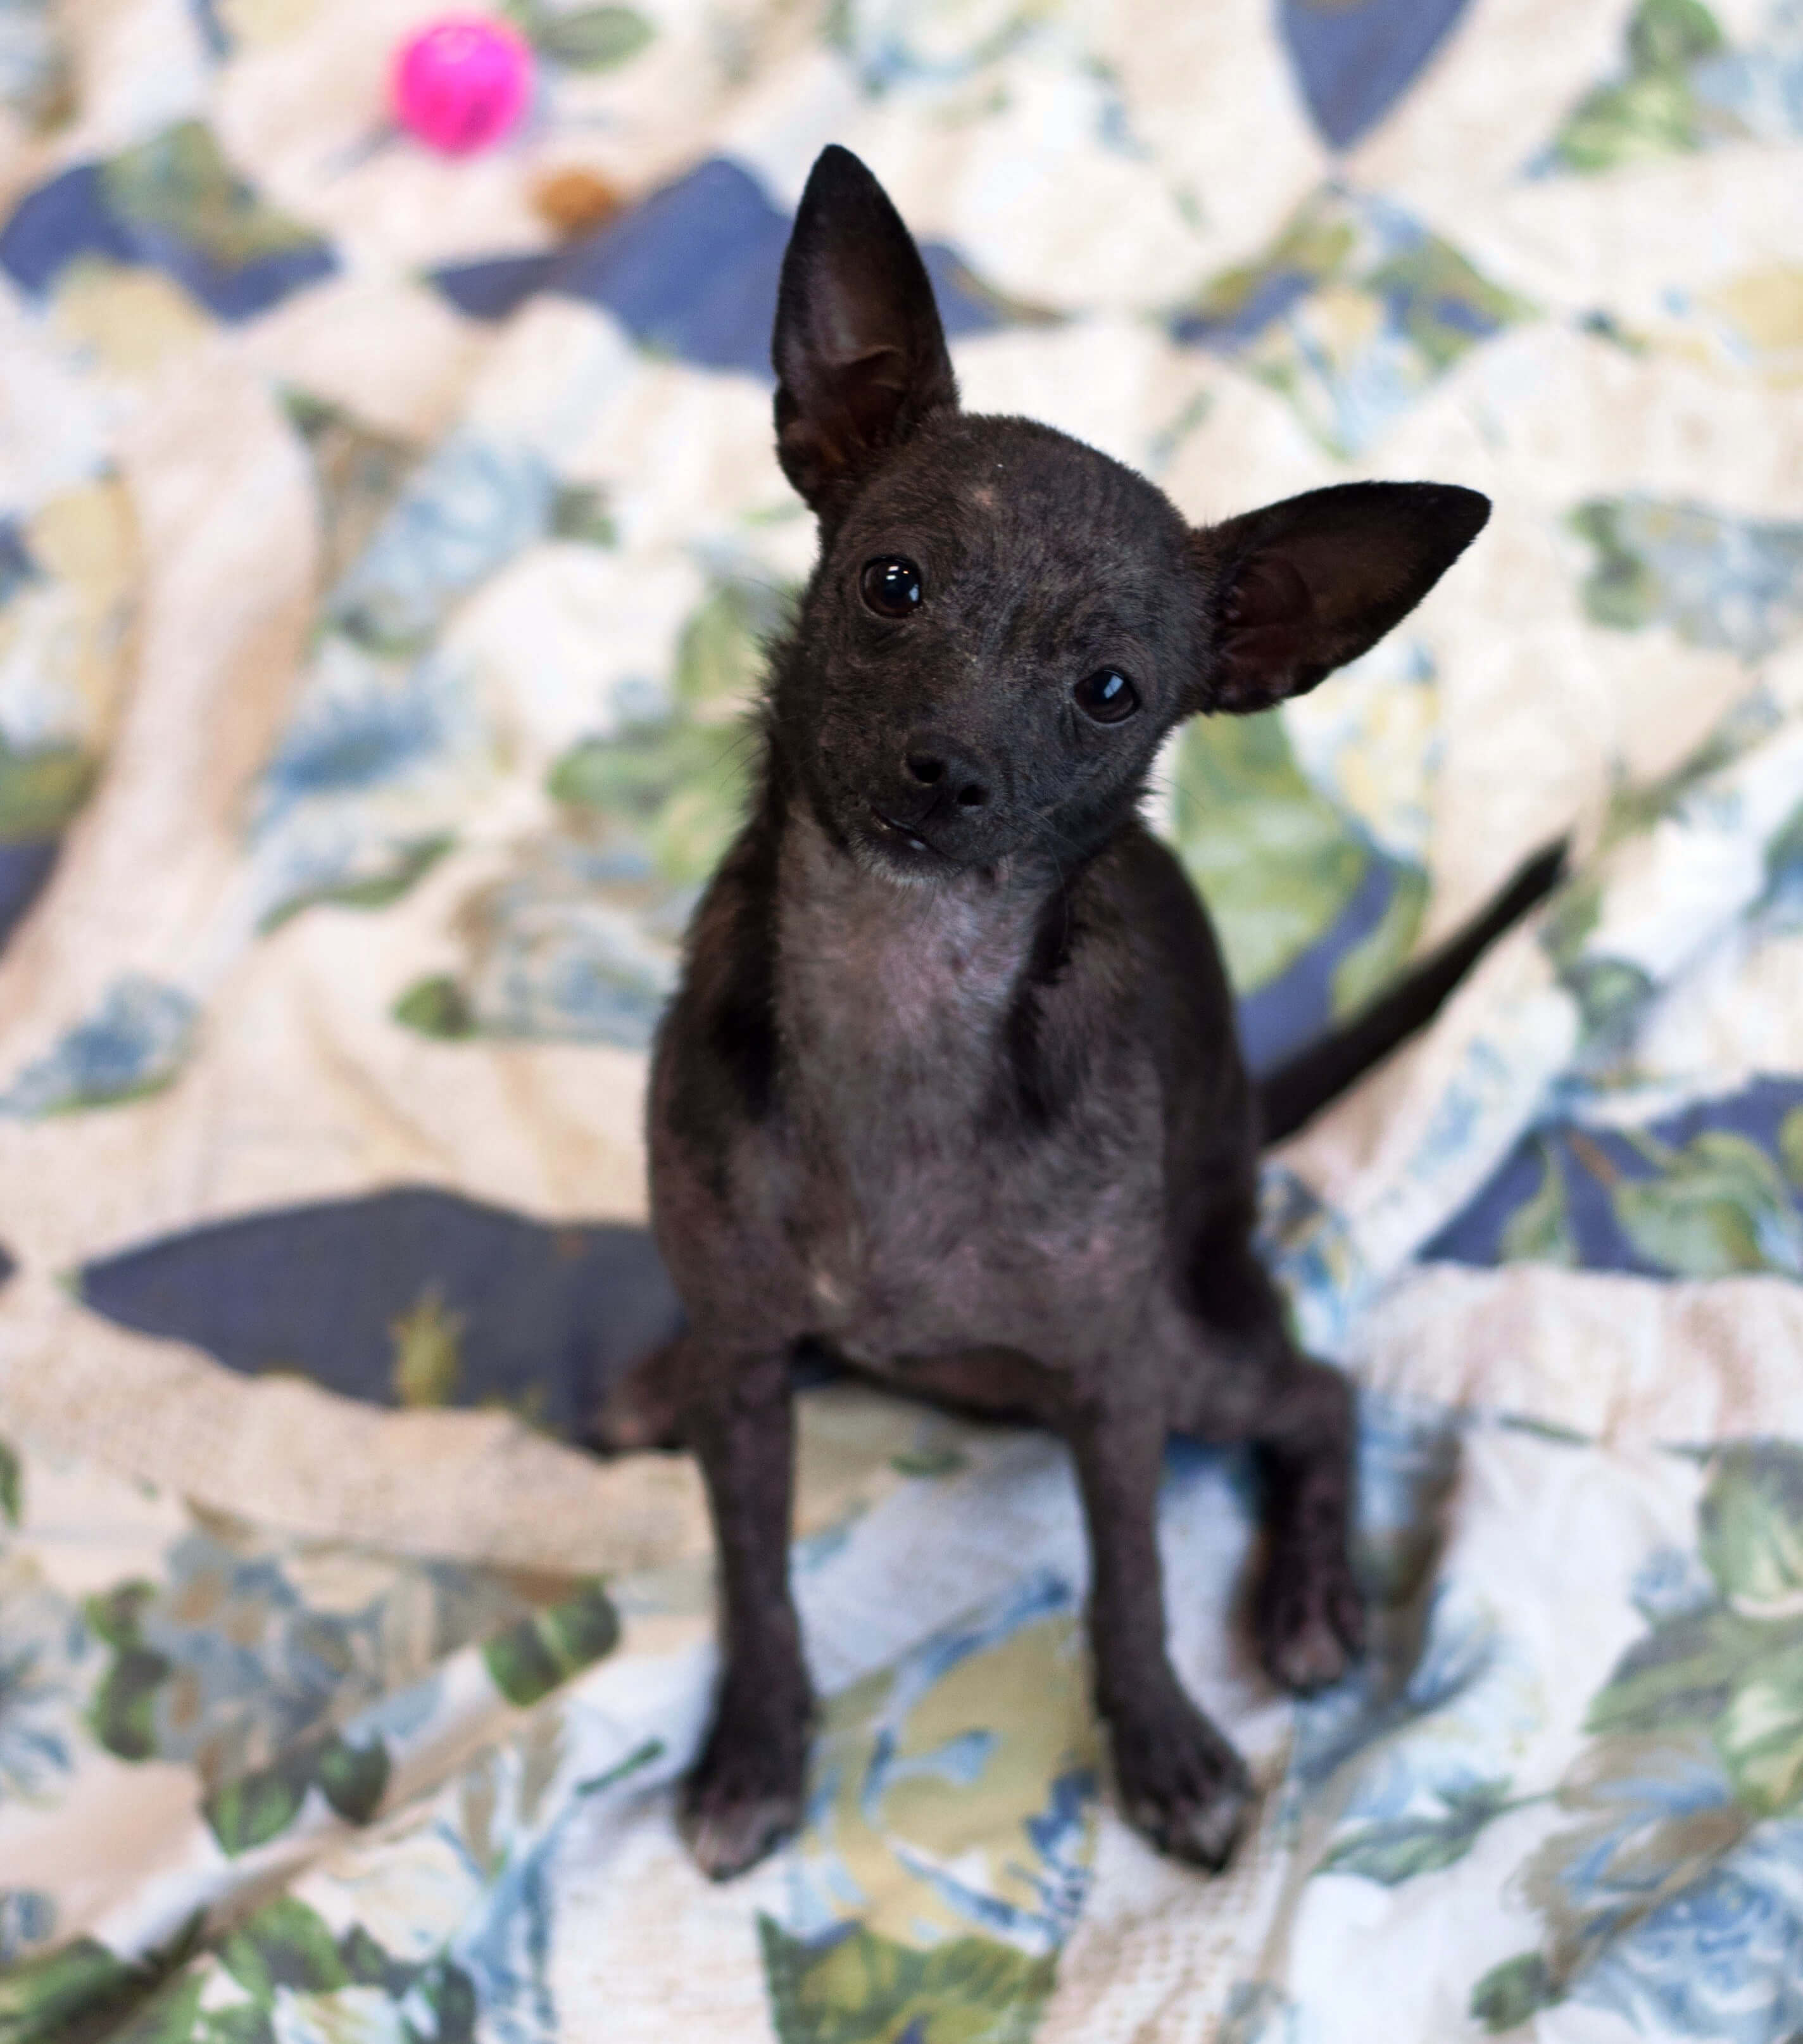 is this a dog or a fruit bat peta